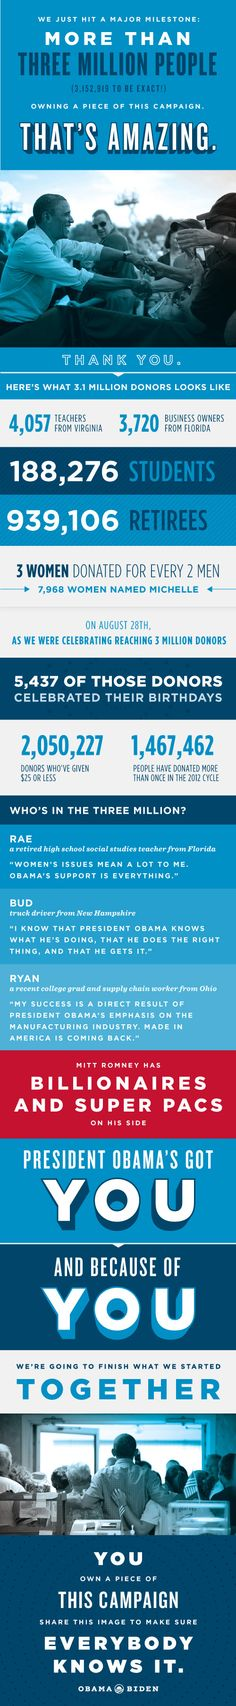 Three million people infographic